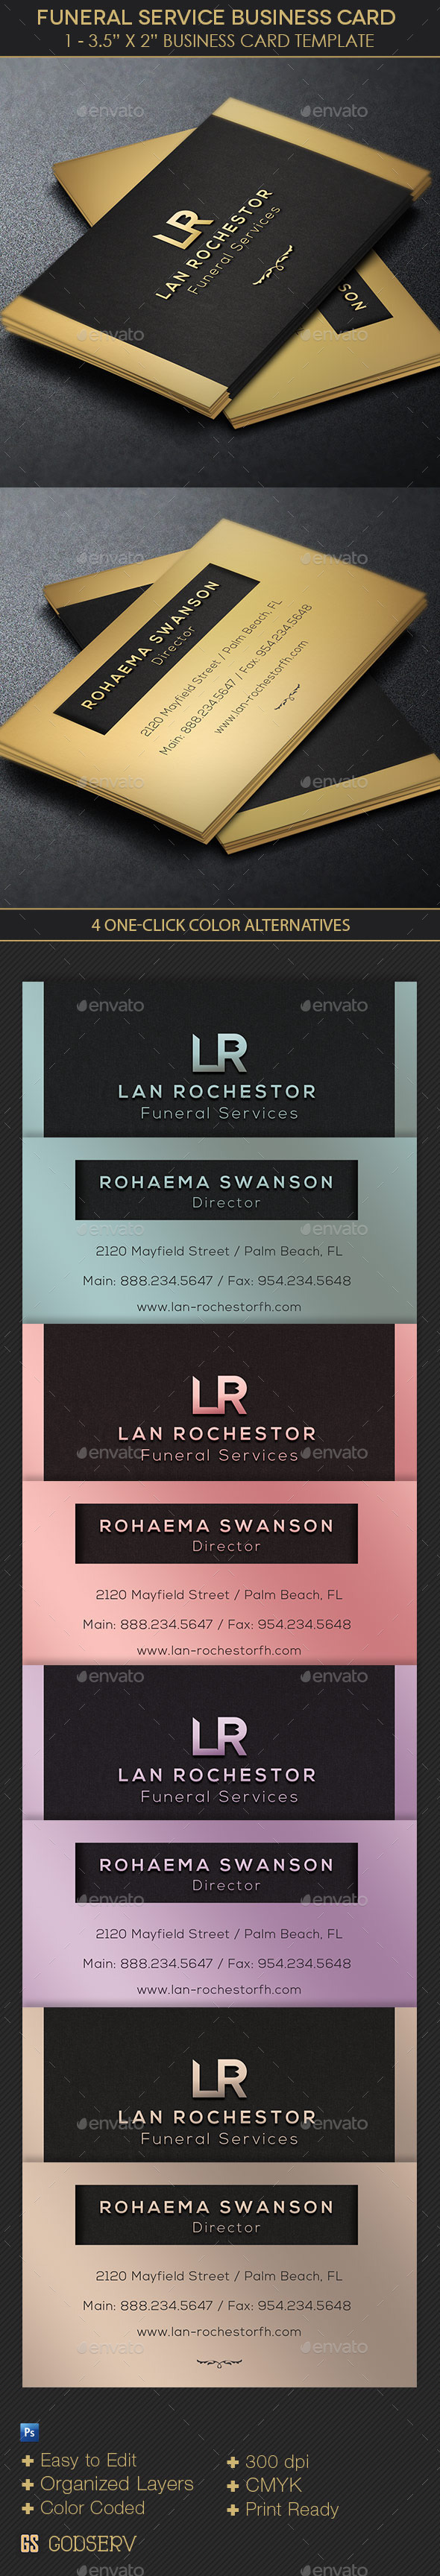 GraphicRiver Funeral Service Business Card Template 10998645